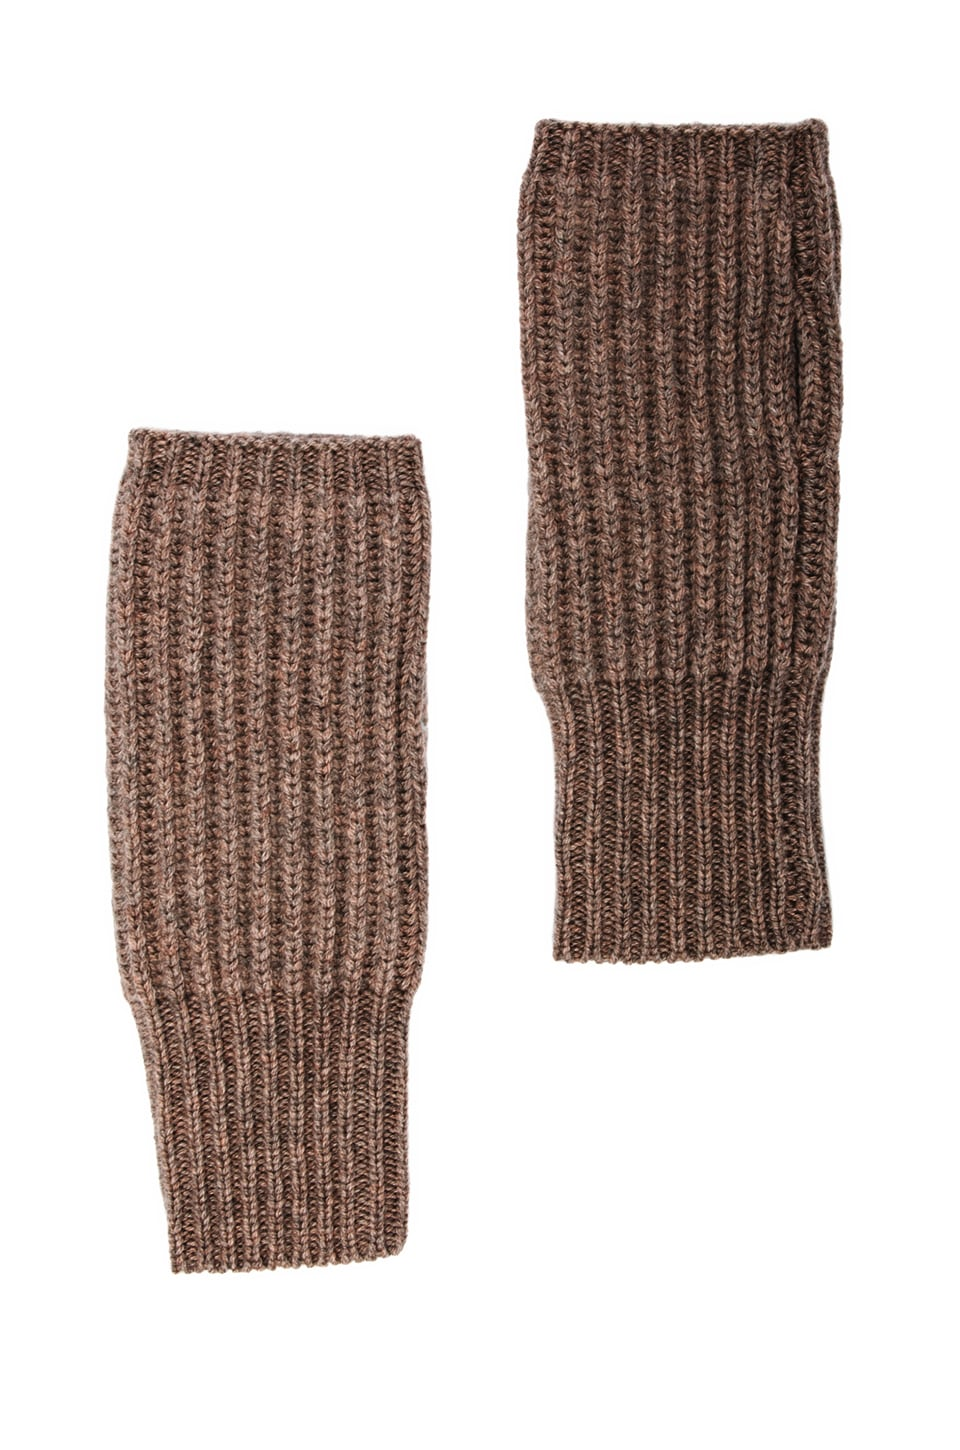 DemyLee Cashmere Wrist Warmer in Feather Heather